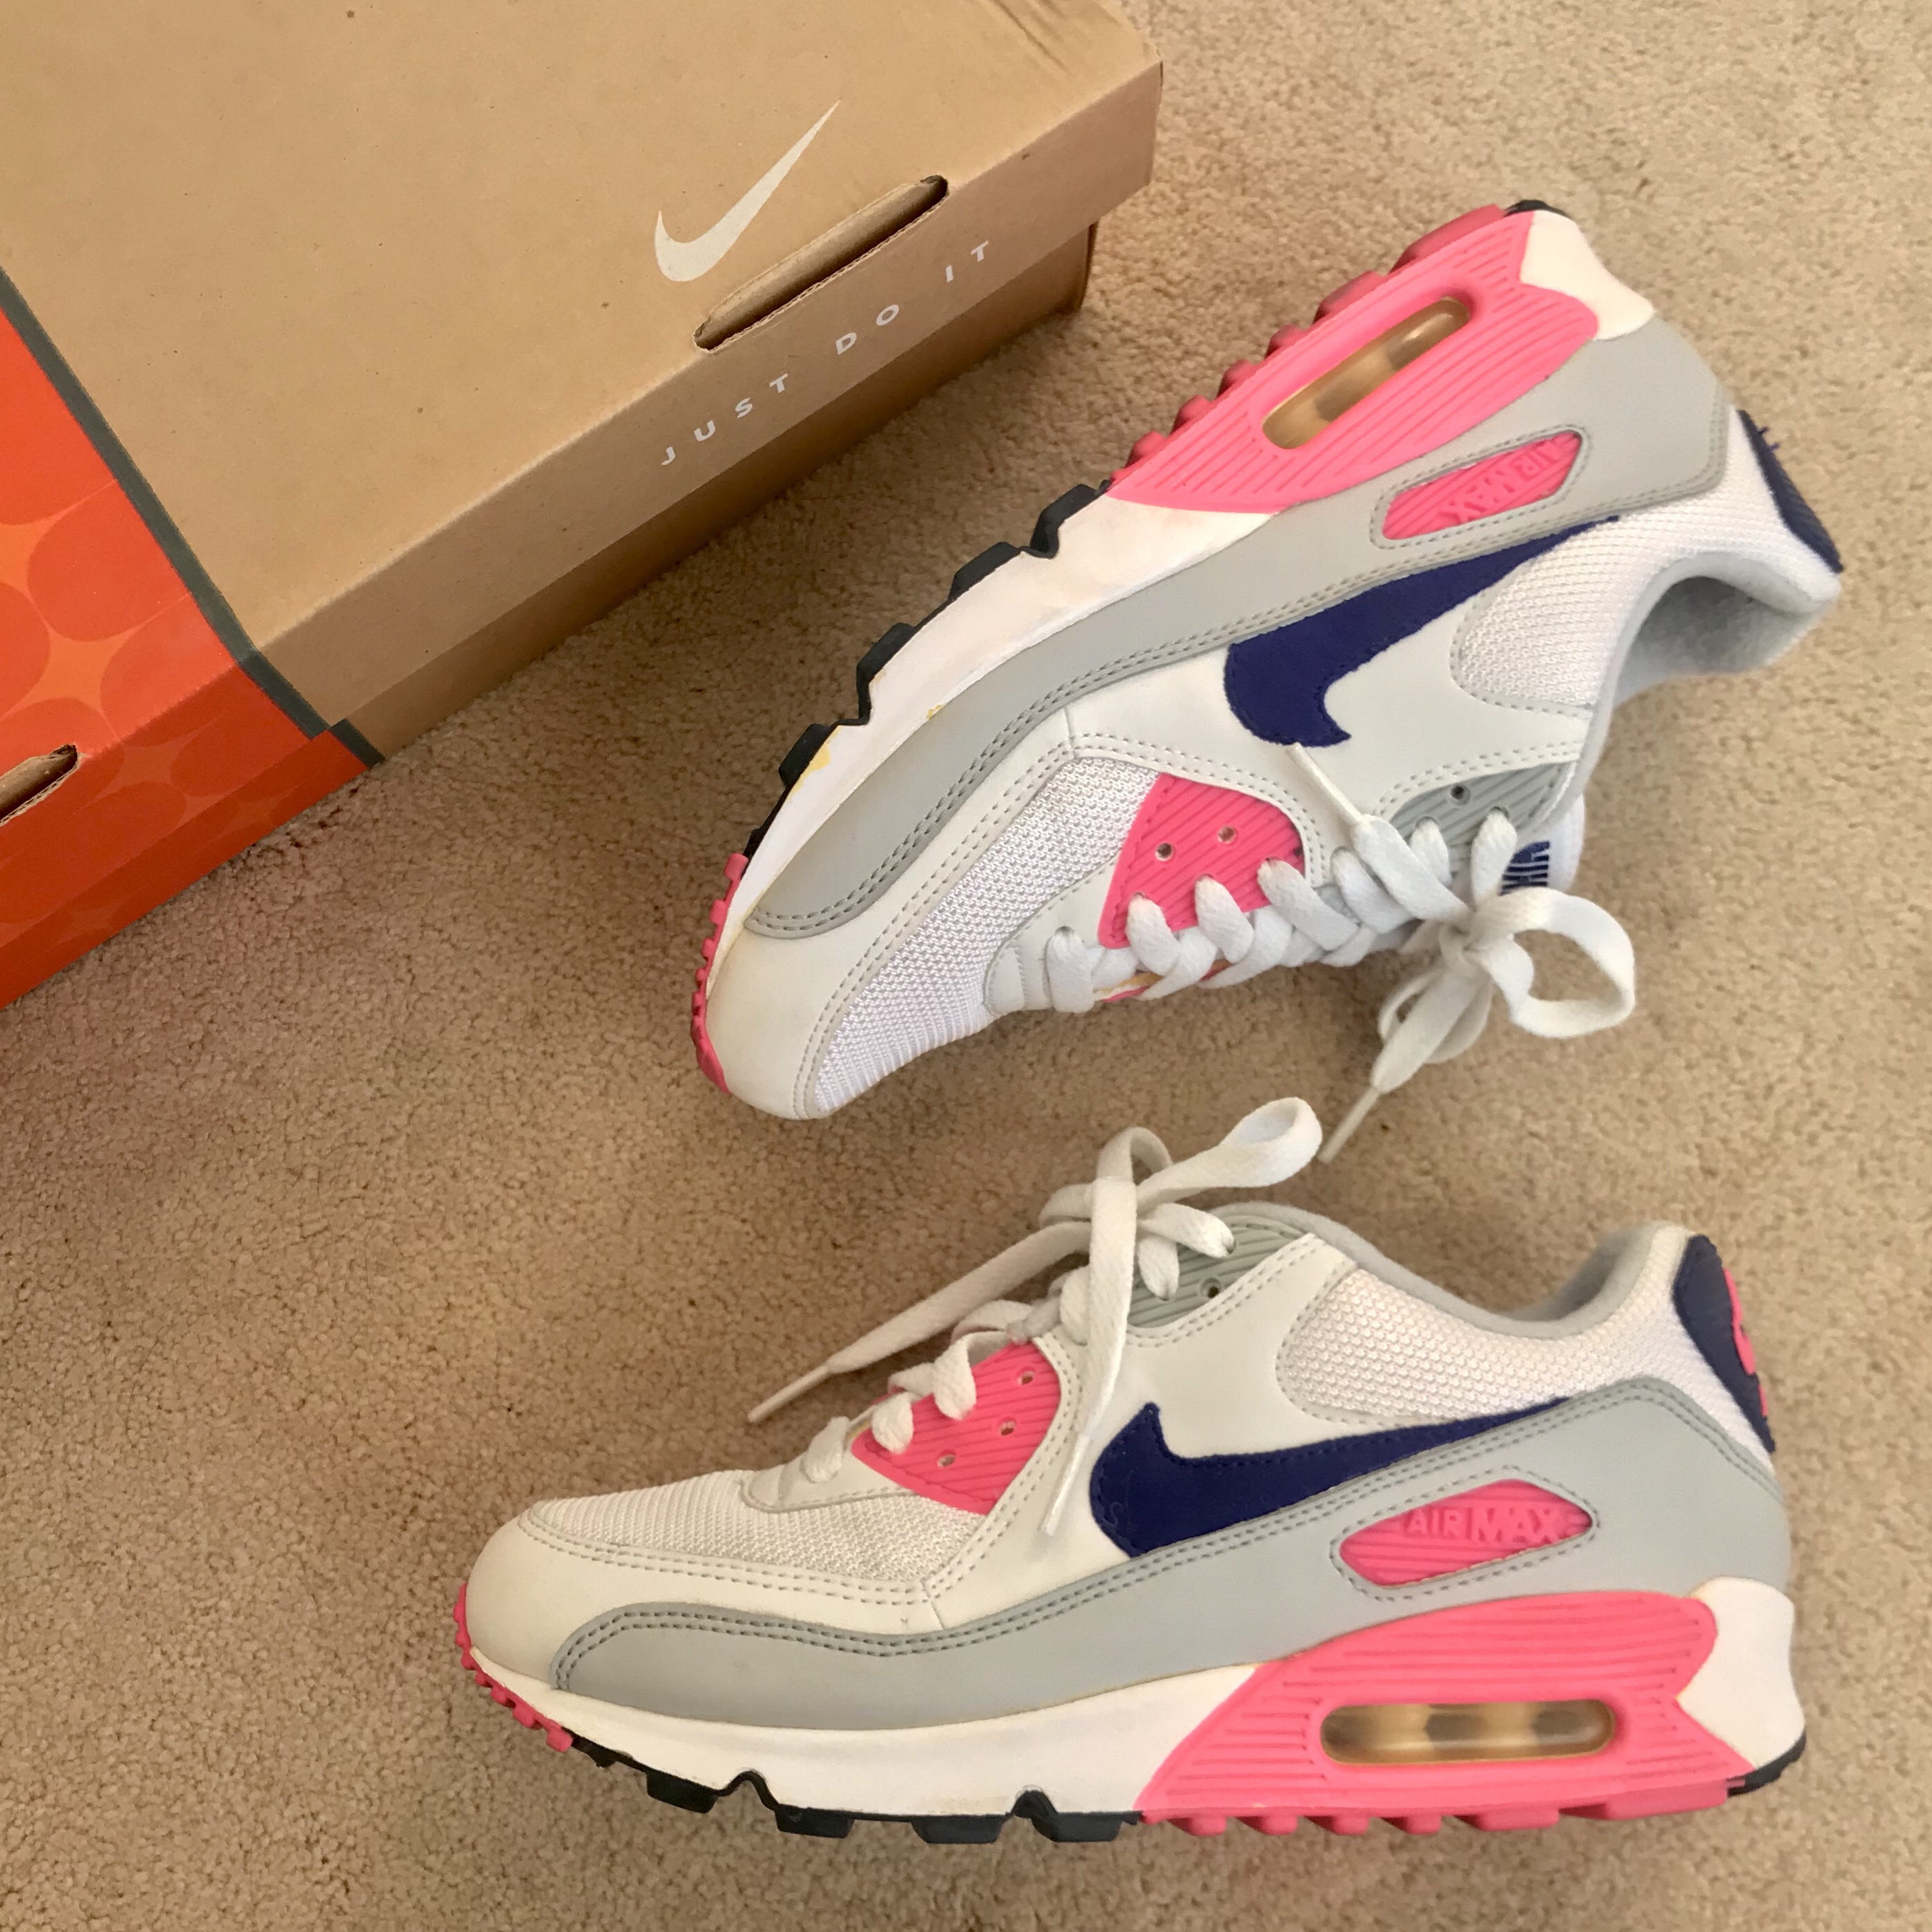 NIKE WOMENS AIR MAX 90 CLASSIC CONCORD WHITE PINK... - Depop